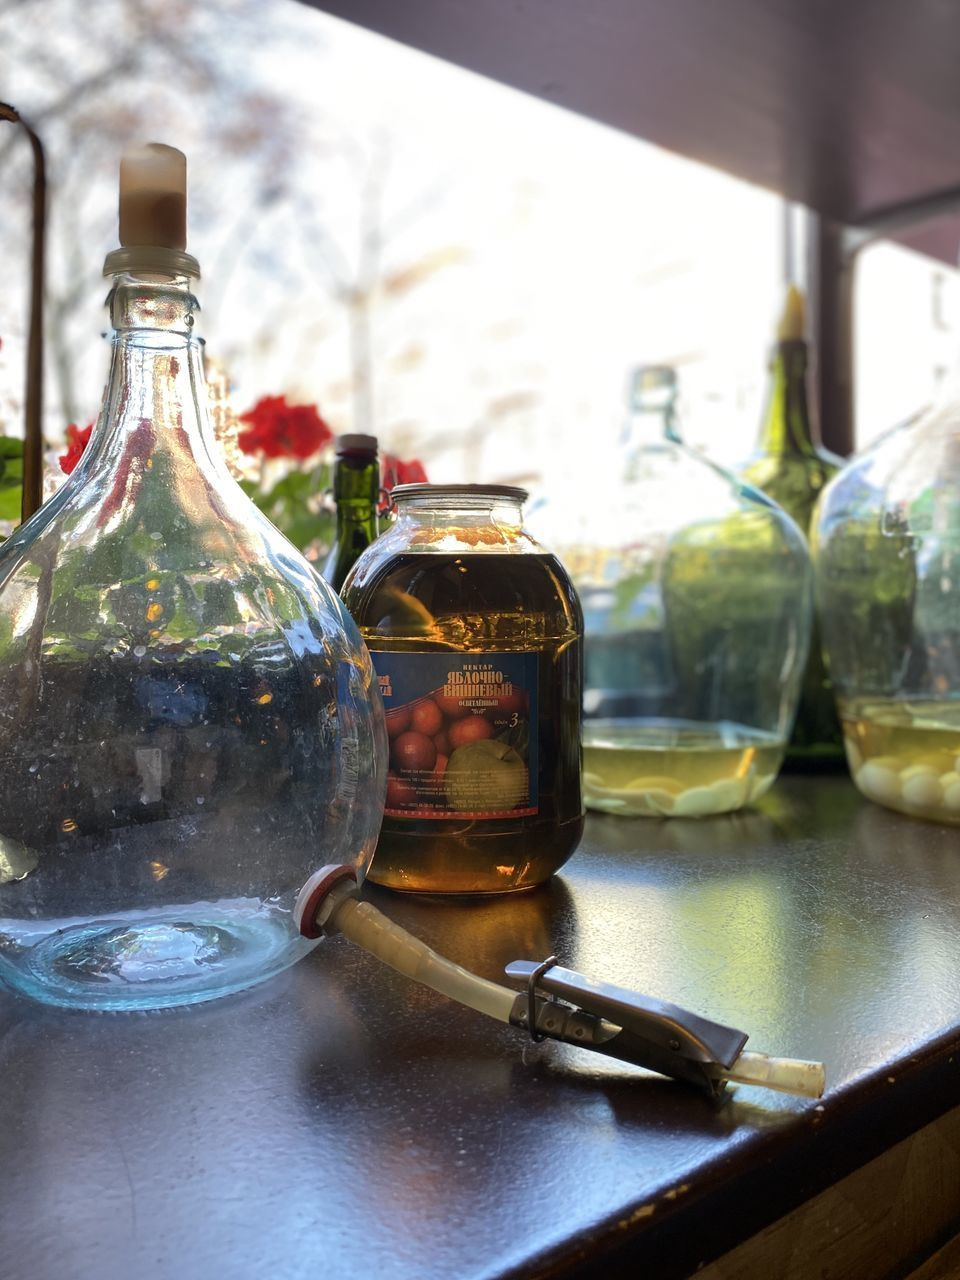 glass - material, table, container, transparent, food and drink, bottle, focus on foreground, still life, day, no people, indoors, close-up, drink, refreshment, freshness, jar, oil, food, reflection, olive oil, glass